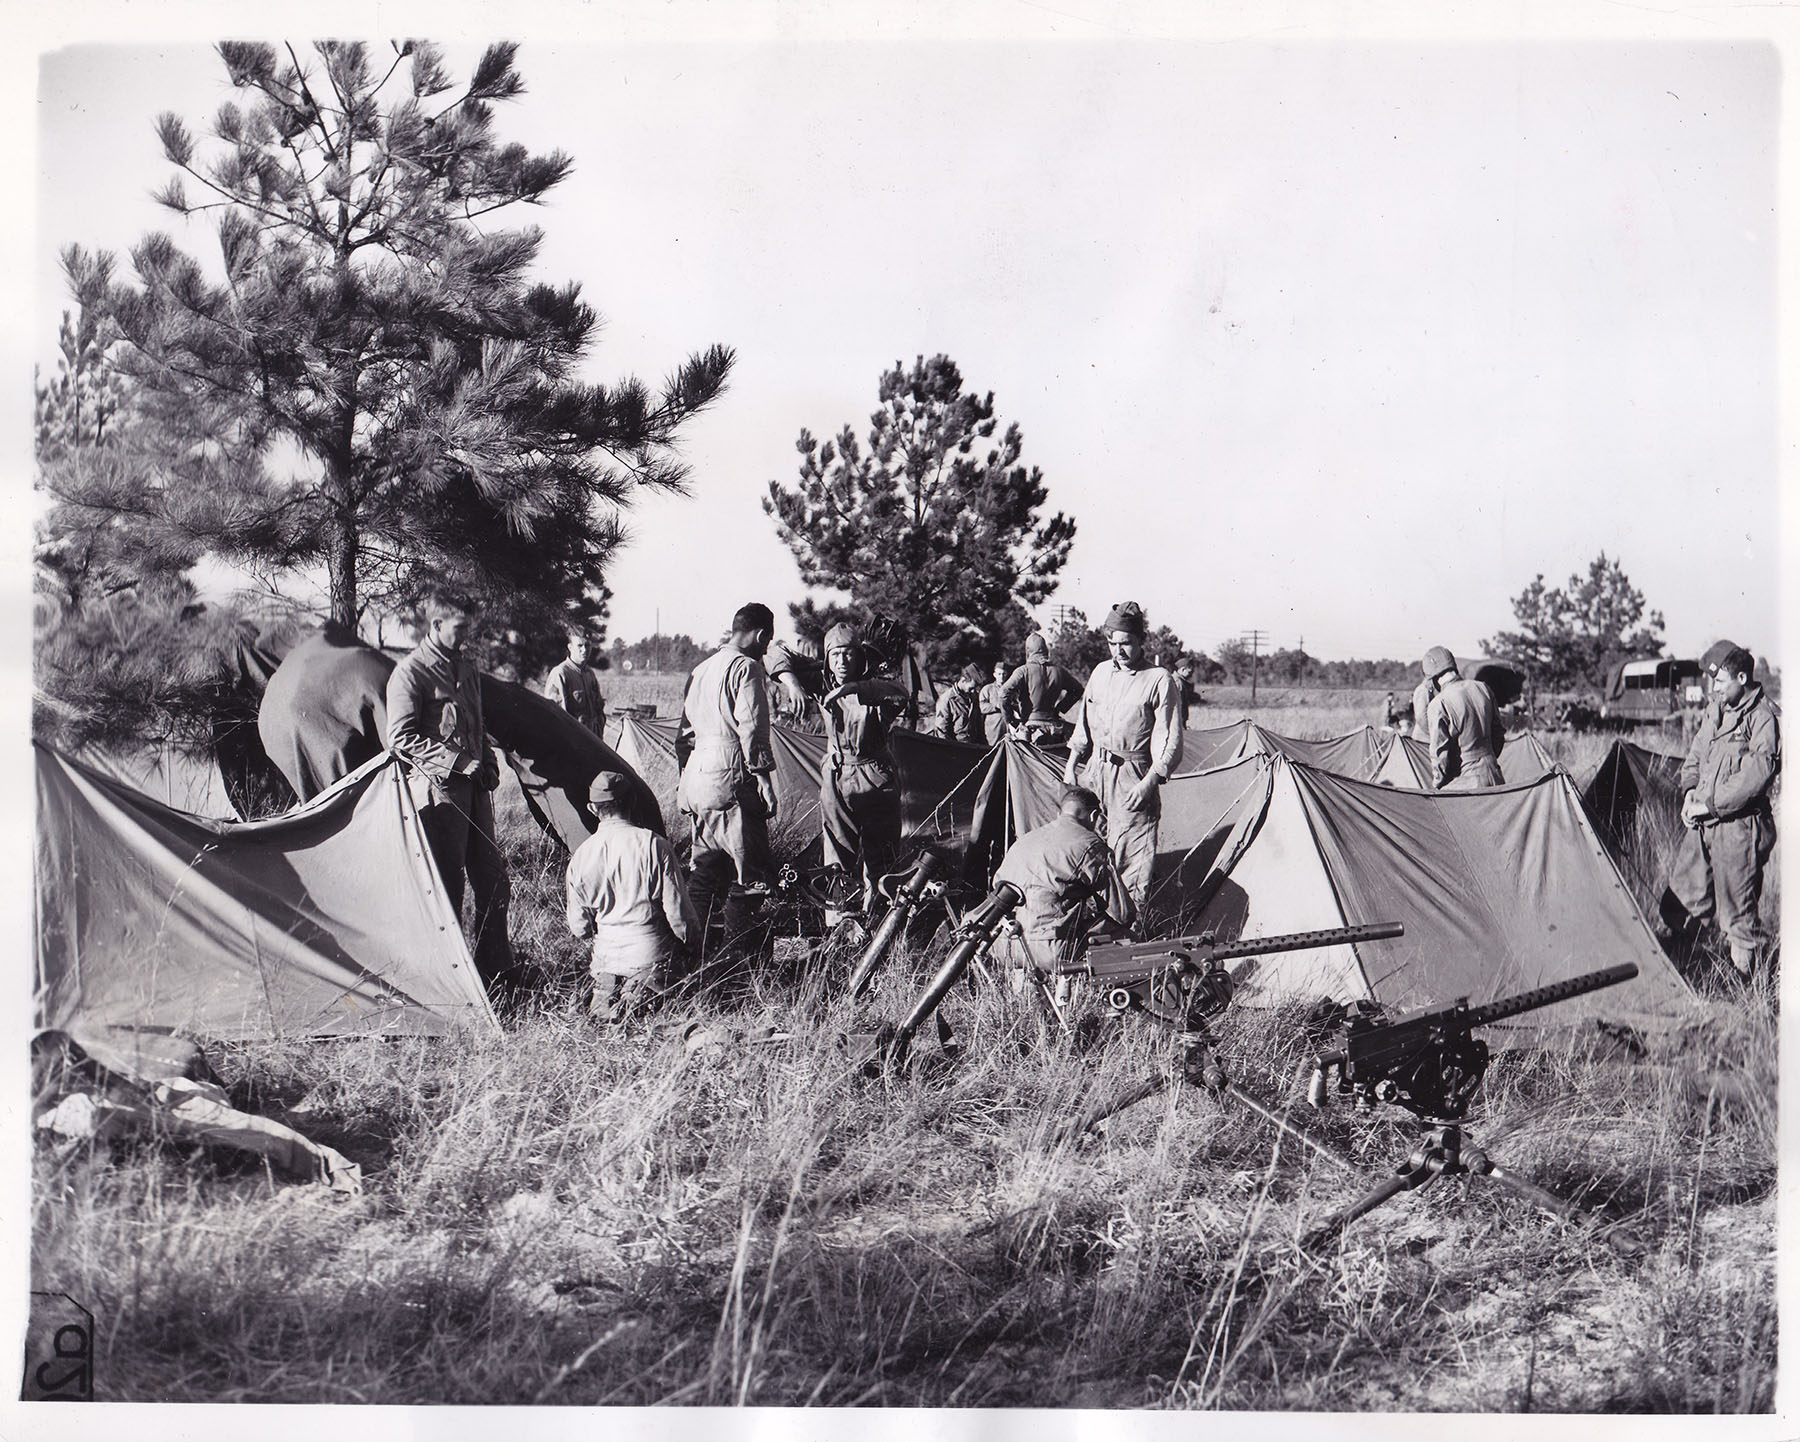 Troops of the 41st  Infantry from Fort Benning, GA at their bivouac area in Blythewood on Nov. 9, 1941.